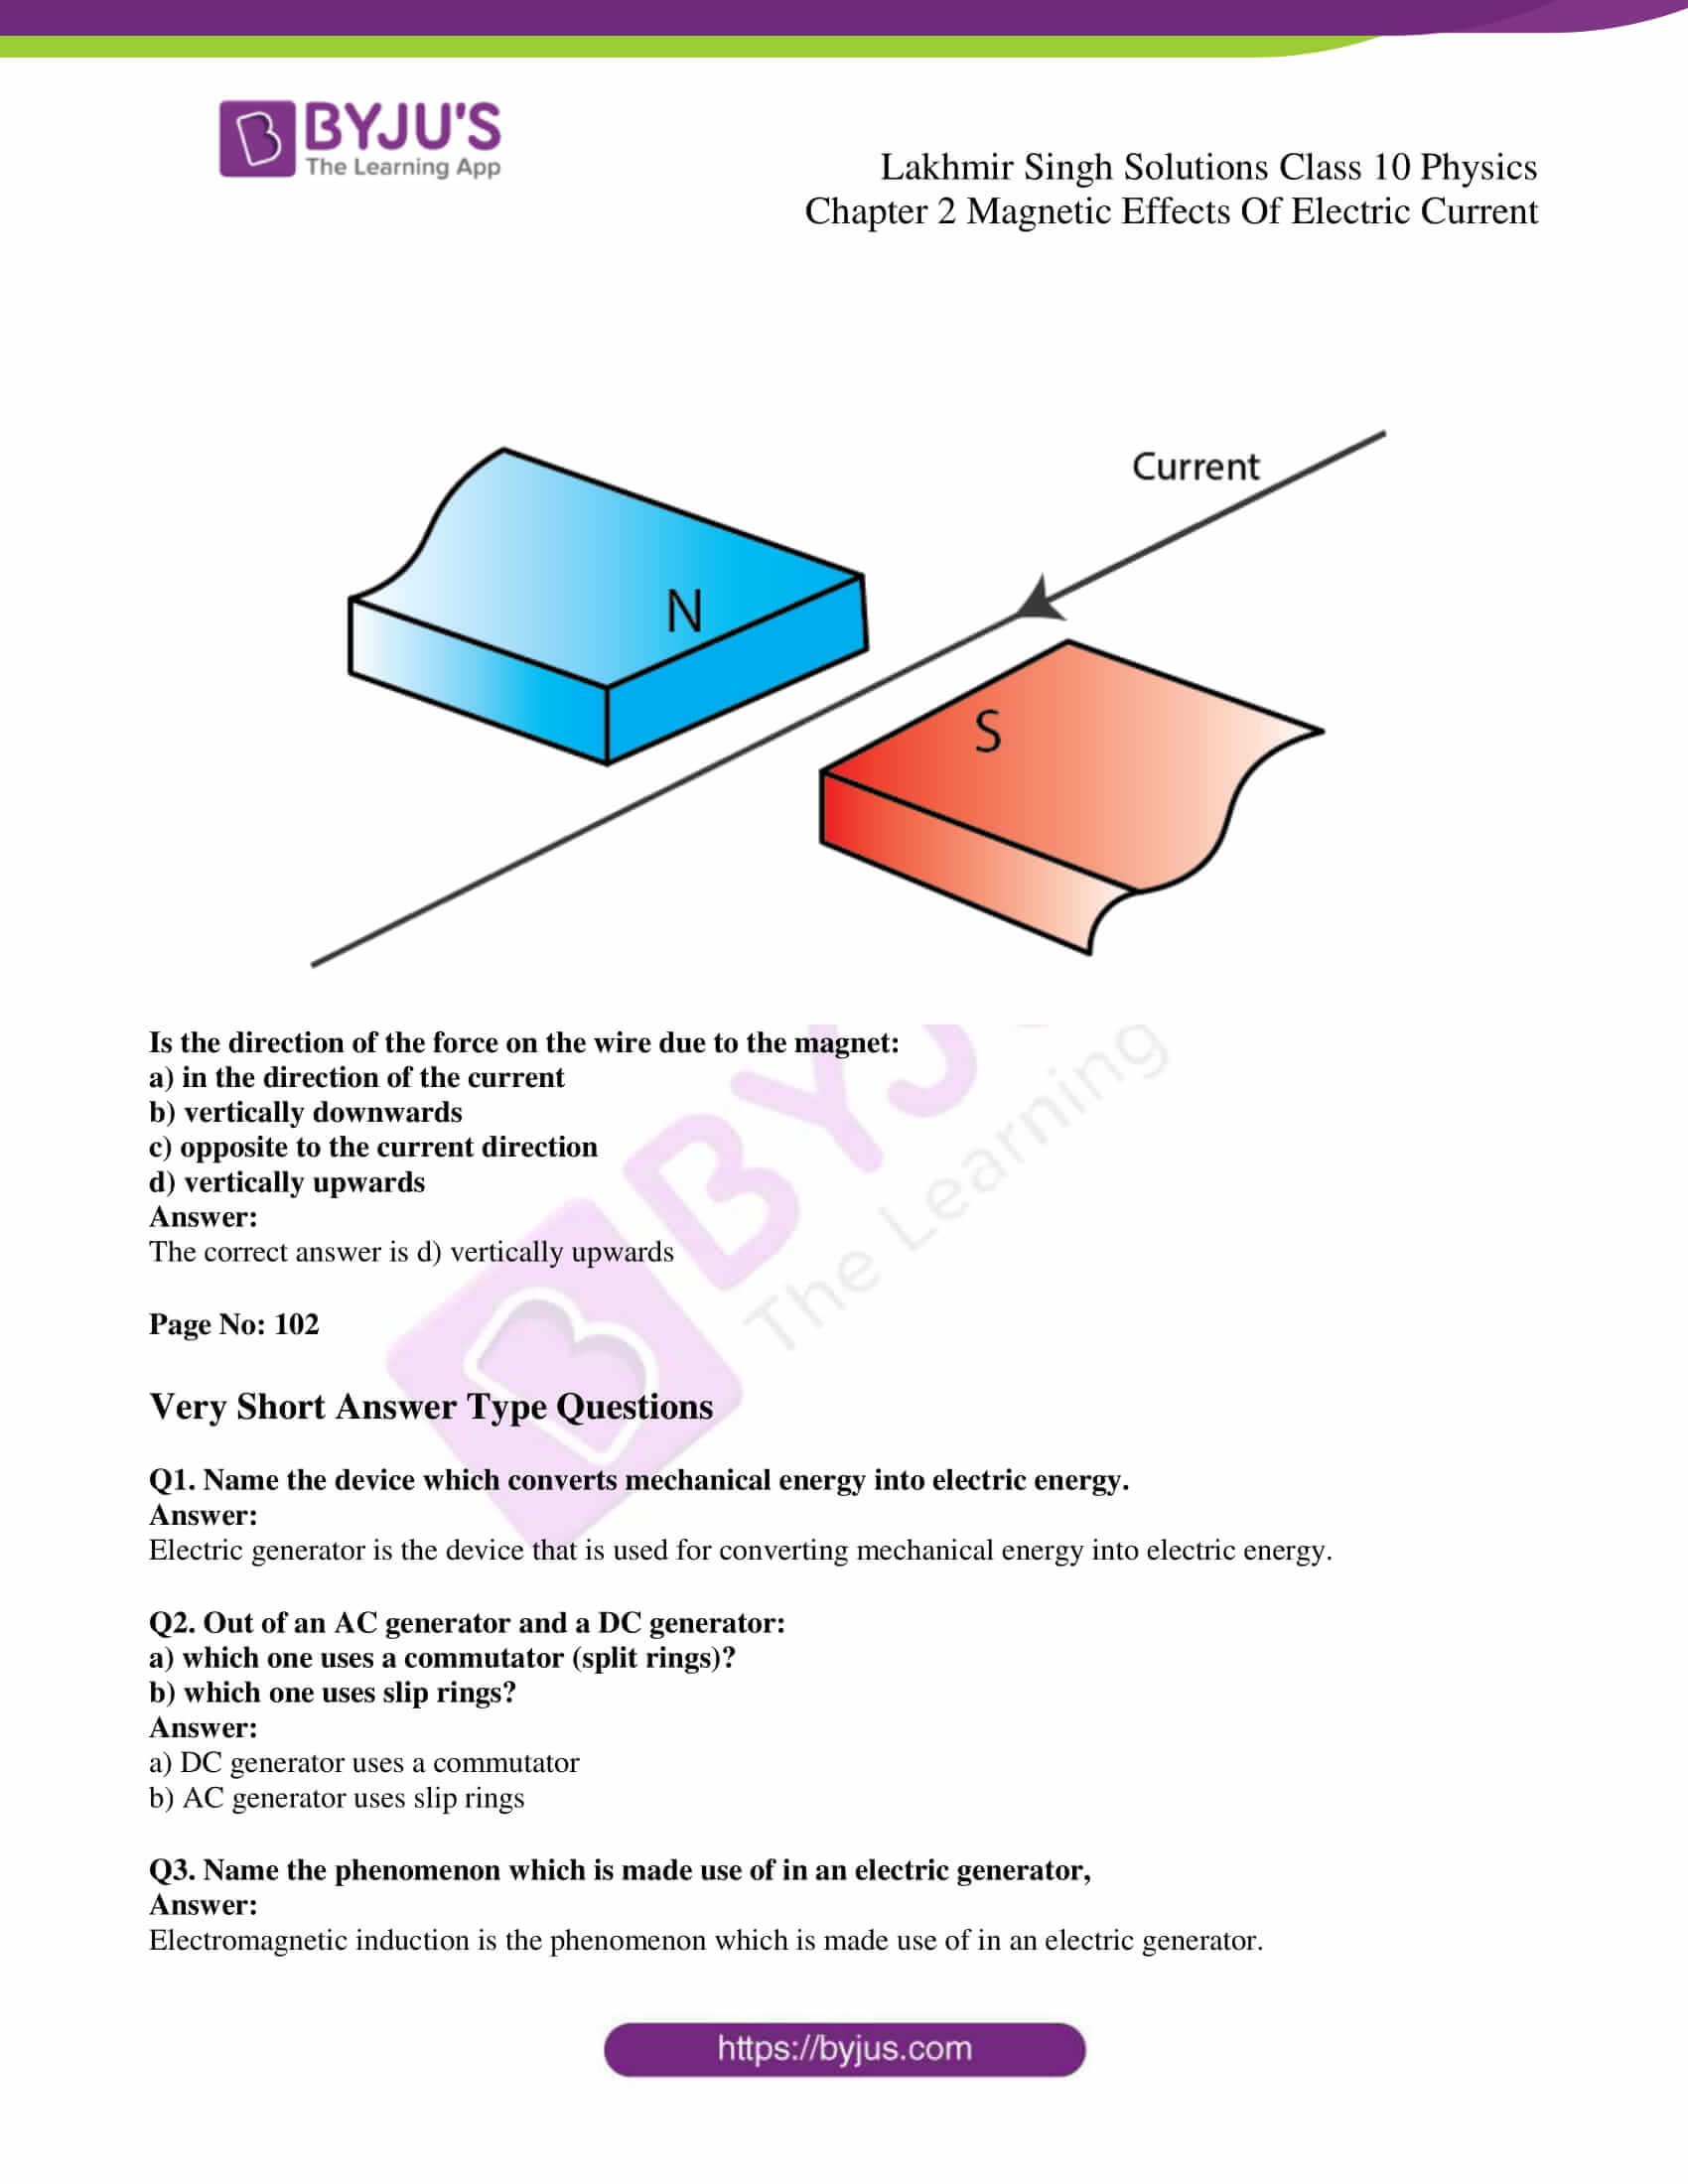 lakhmir singh sol class 10 physics chapter 2 26